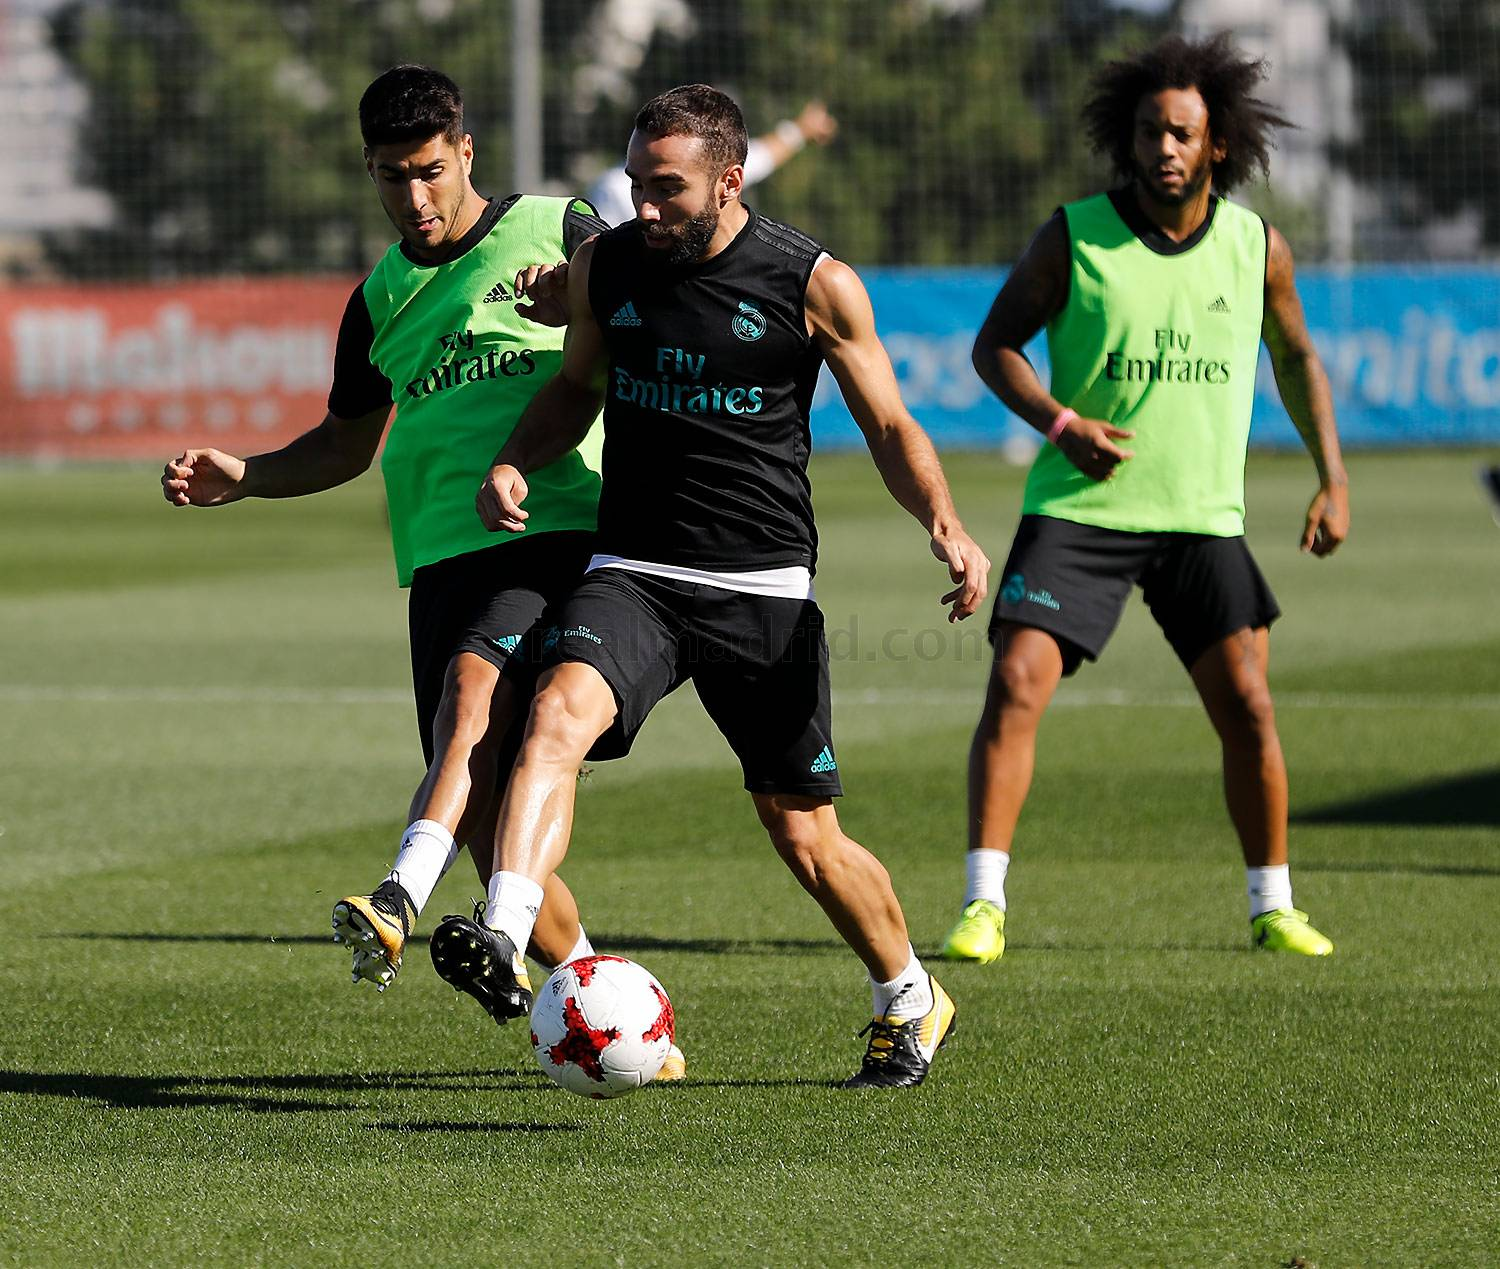 Real Madrid - Entrenamiento del Real Madrid - 11-08-2017